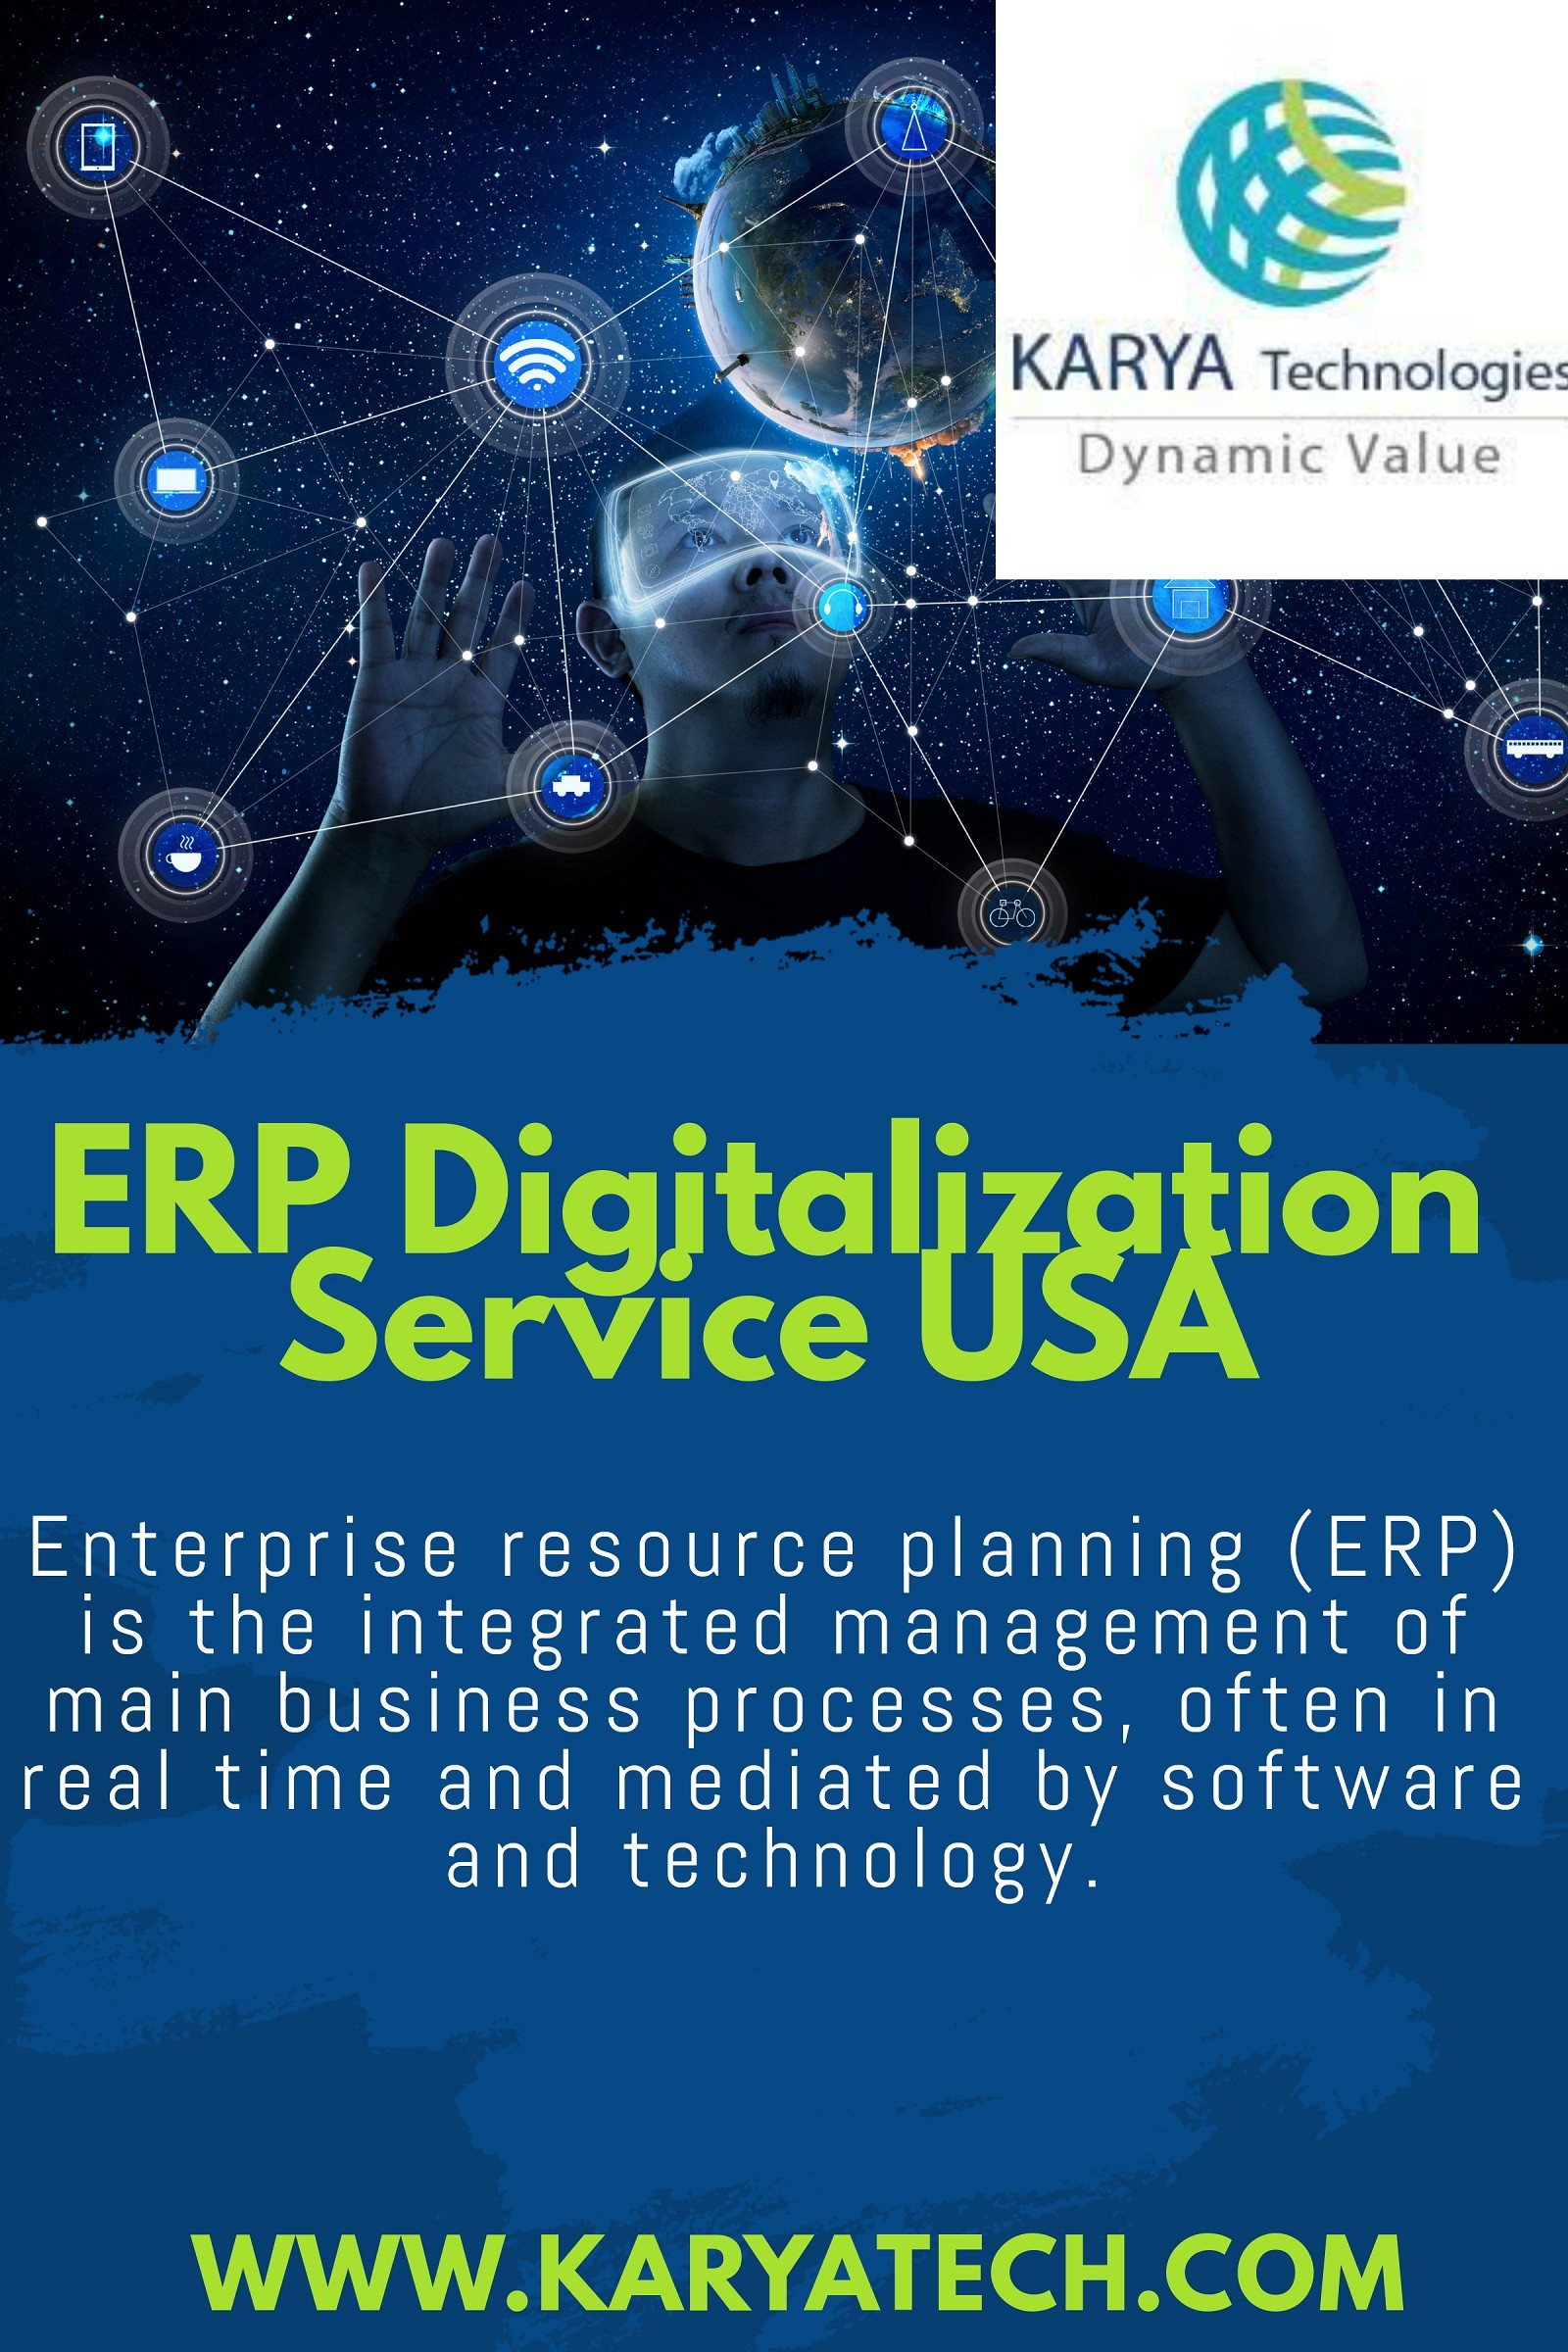 ERP Digitalization service